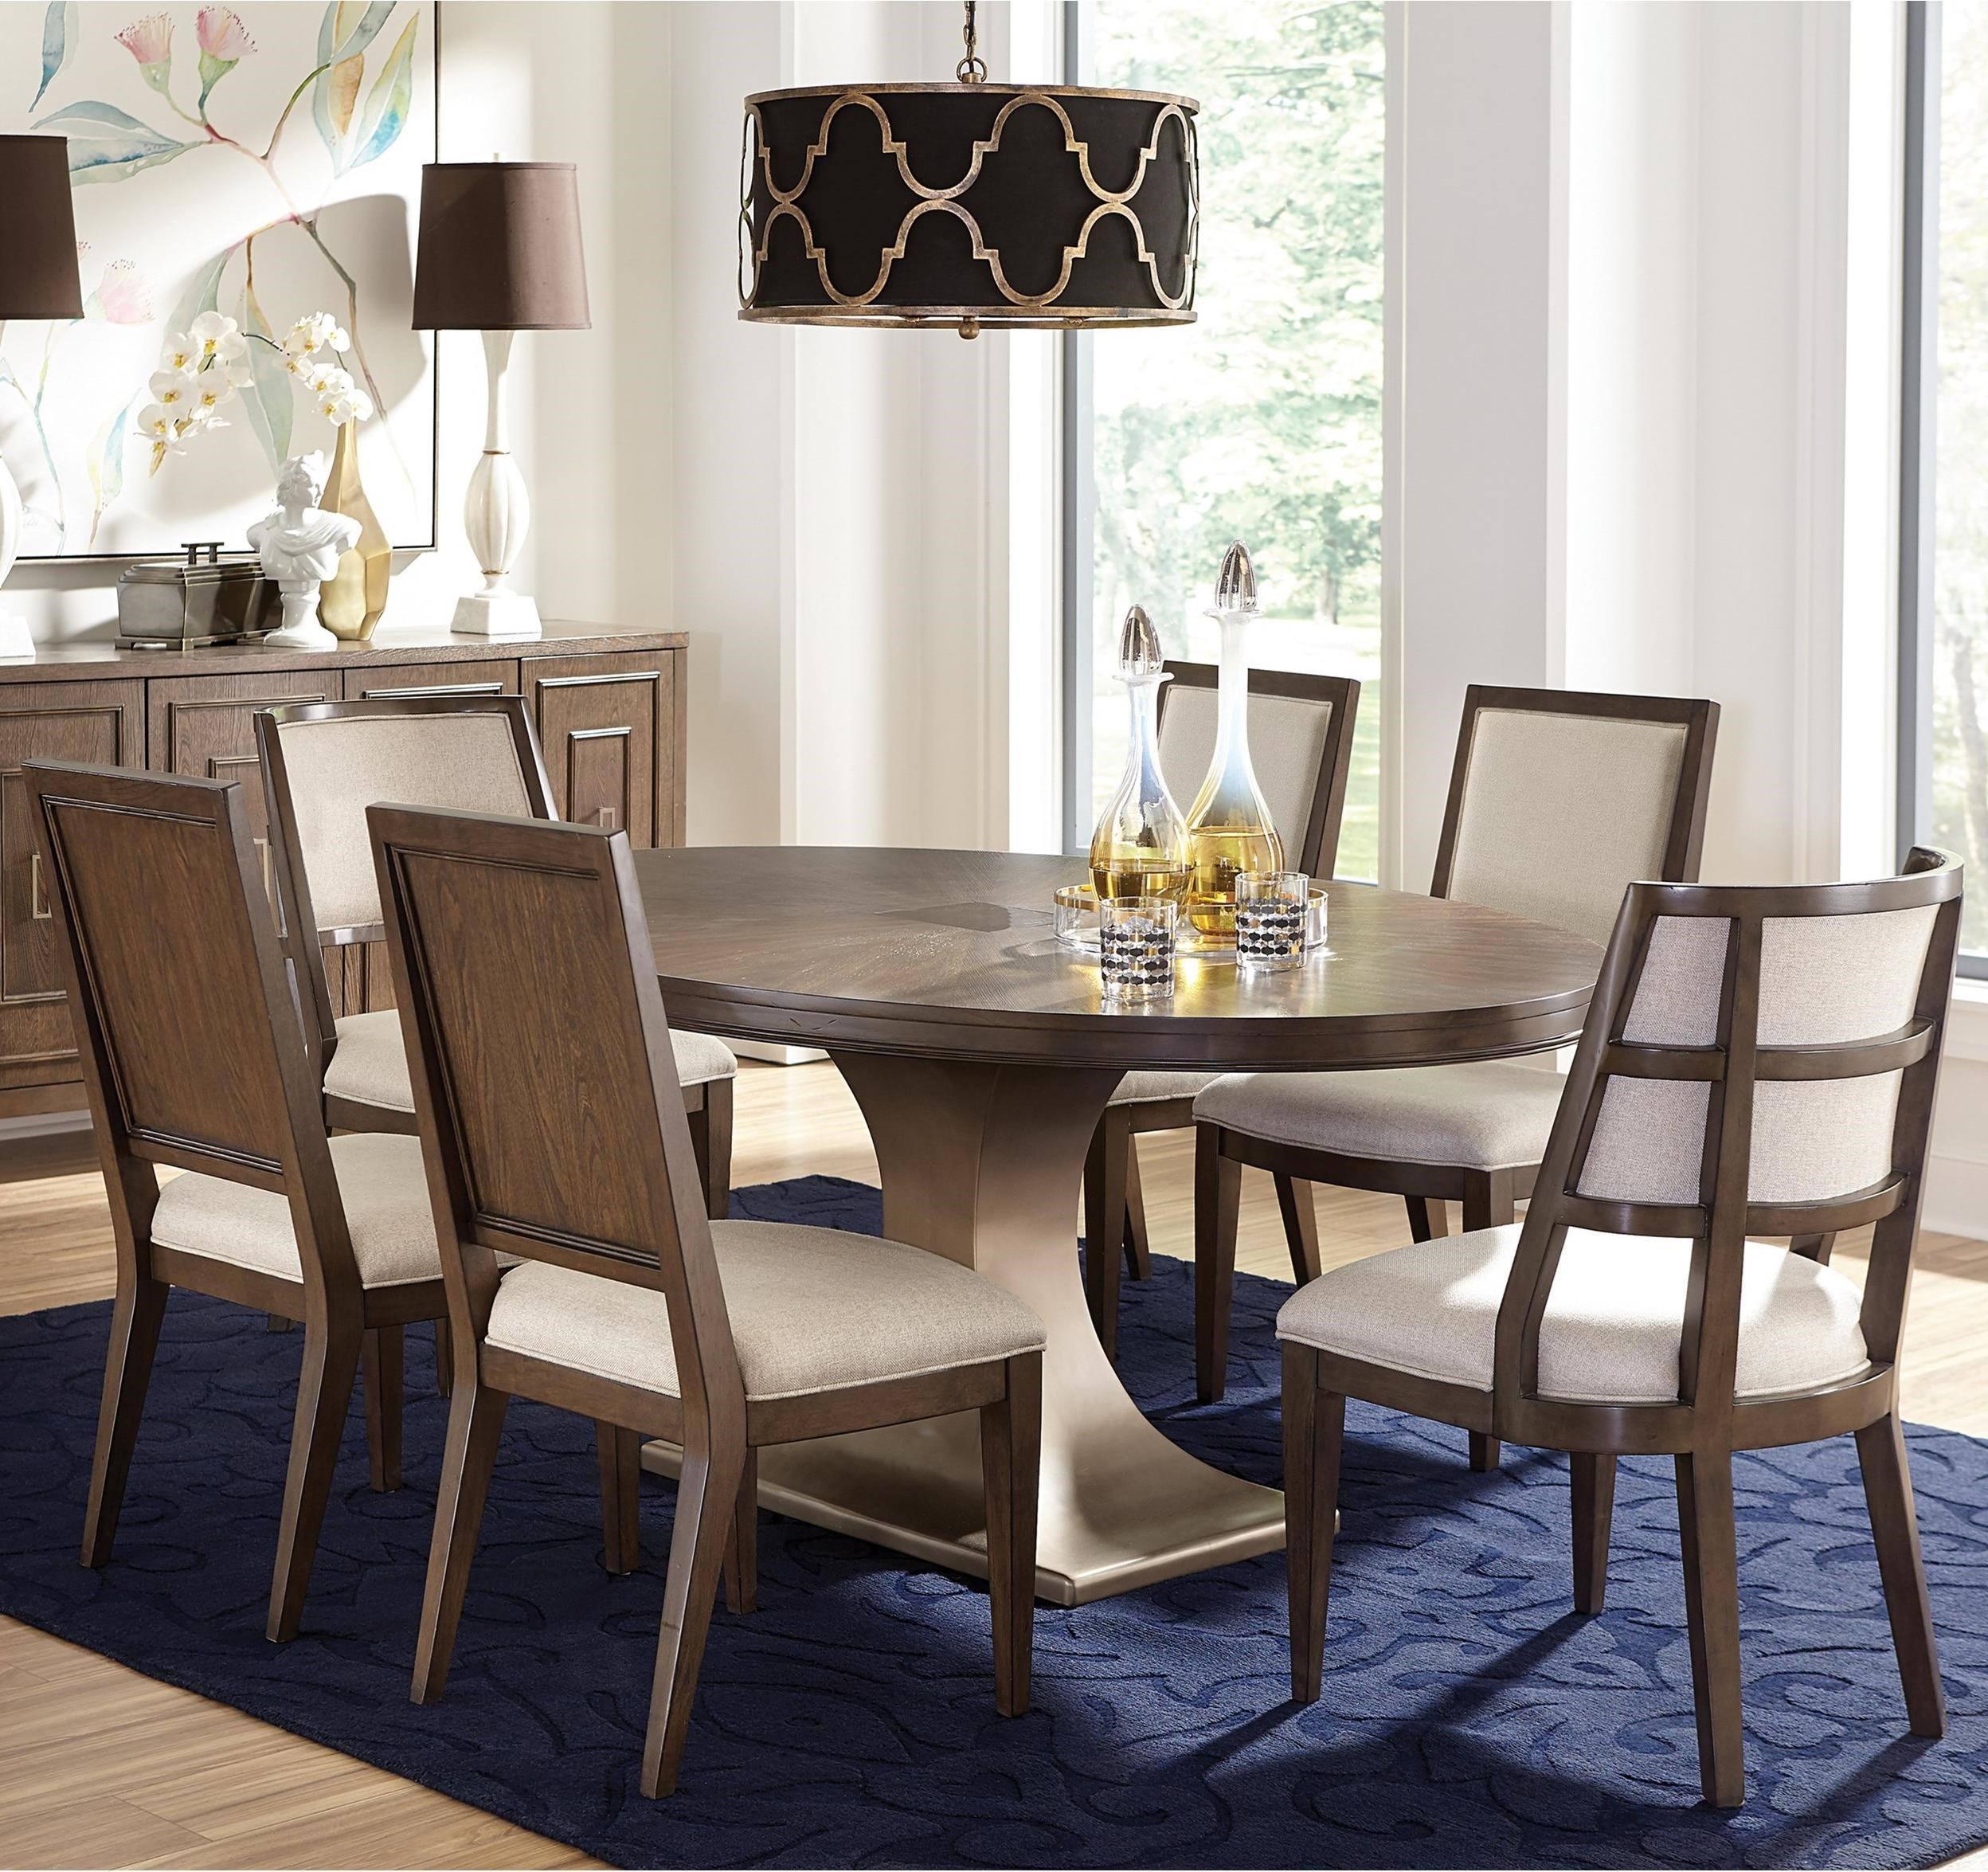 Monterey 7-Piece Table and Chair Set by Riverside Furniture at Zak's Home